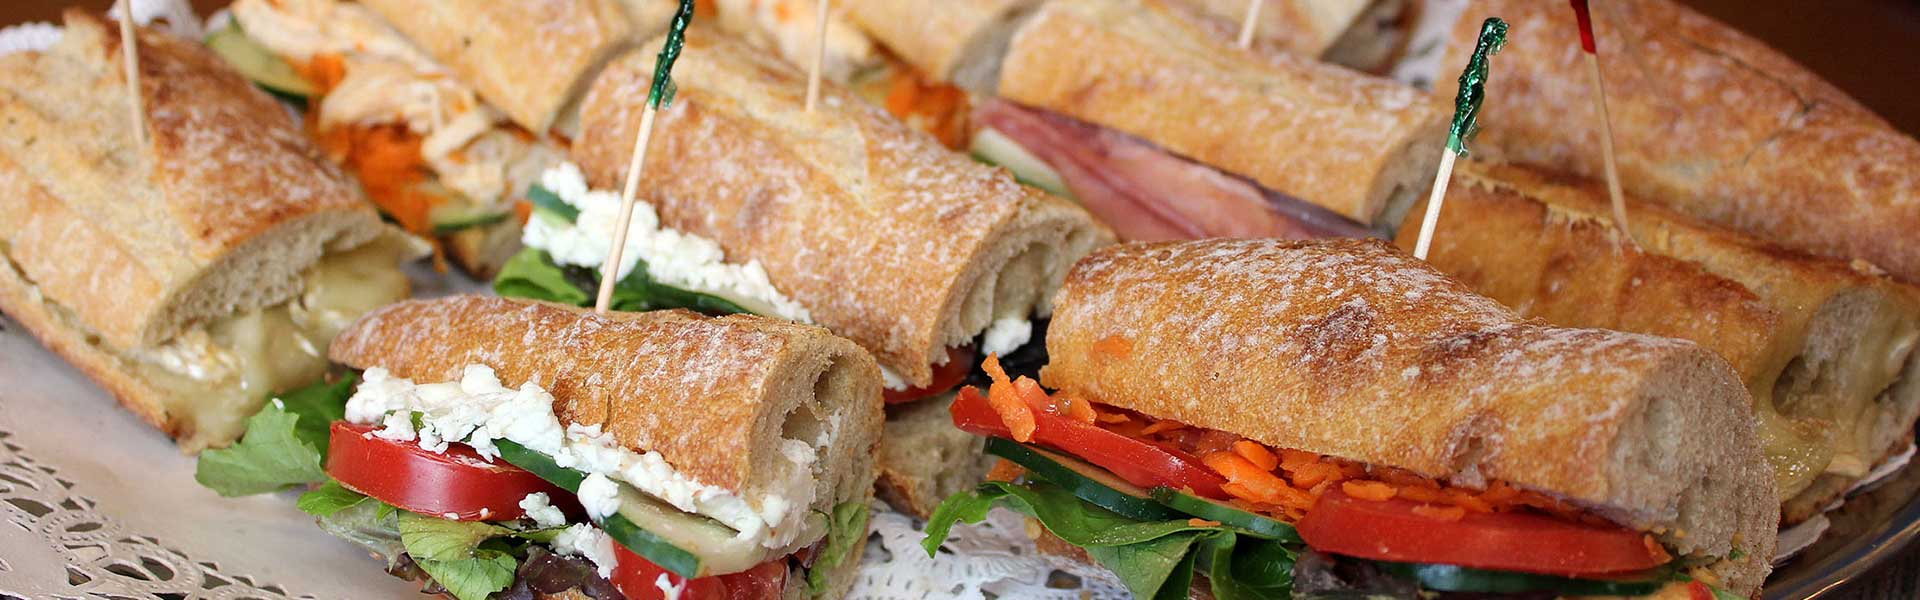 https://thefrenchgourmet.com/wp-content/uploads/2018/02/takeout-catering-baguette-sandwiches.jpg